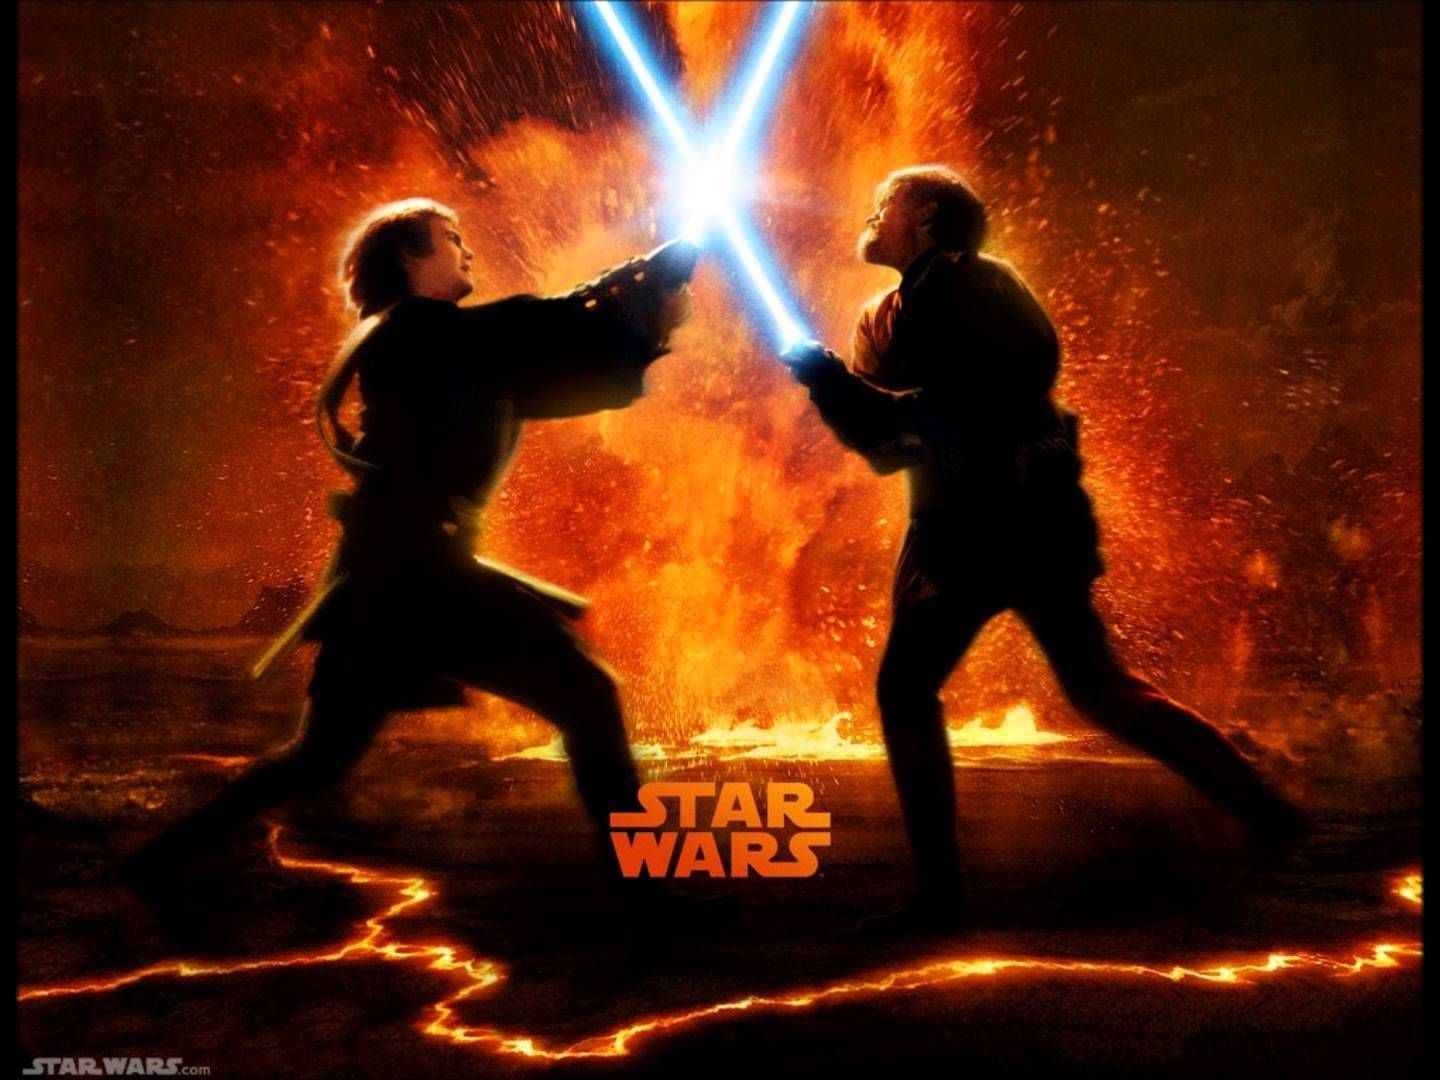 Obi Wan Kenobi Vs Anakin Skywalker Desktop Wallpapers Wallpaper Cave